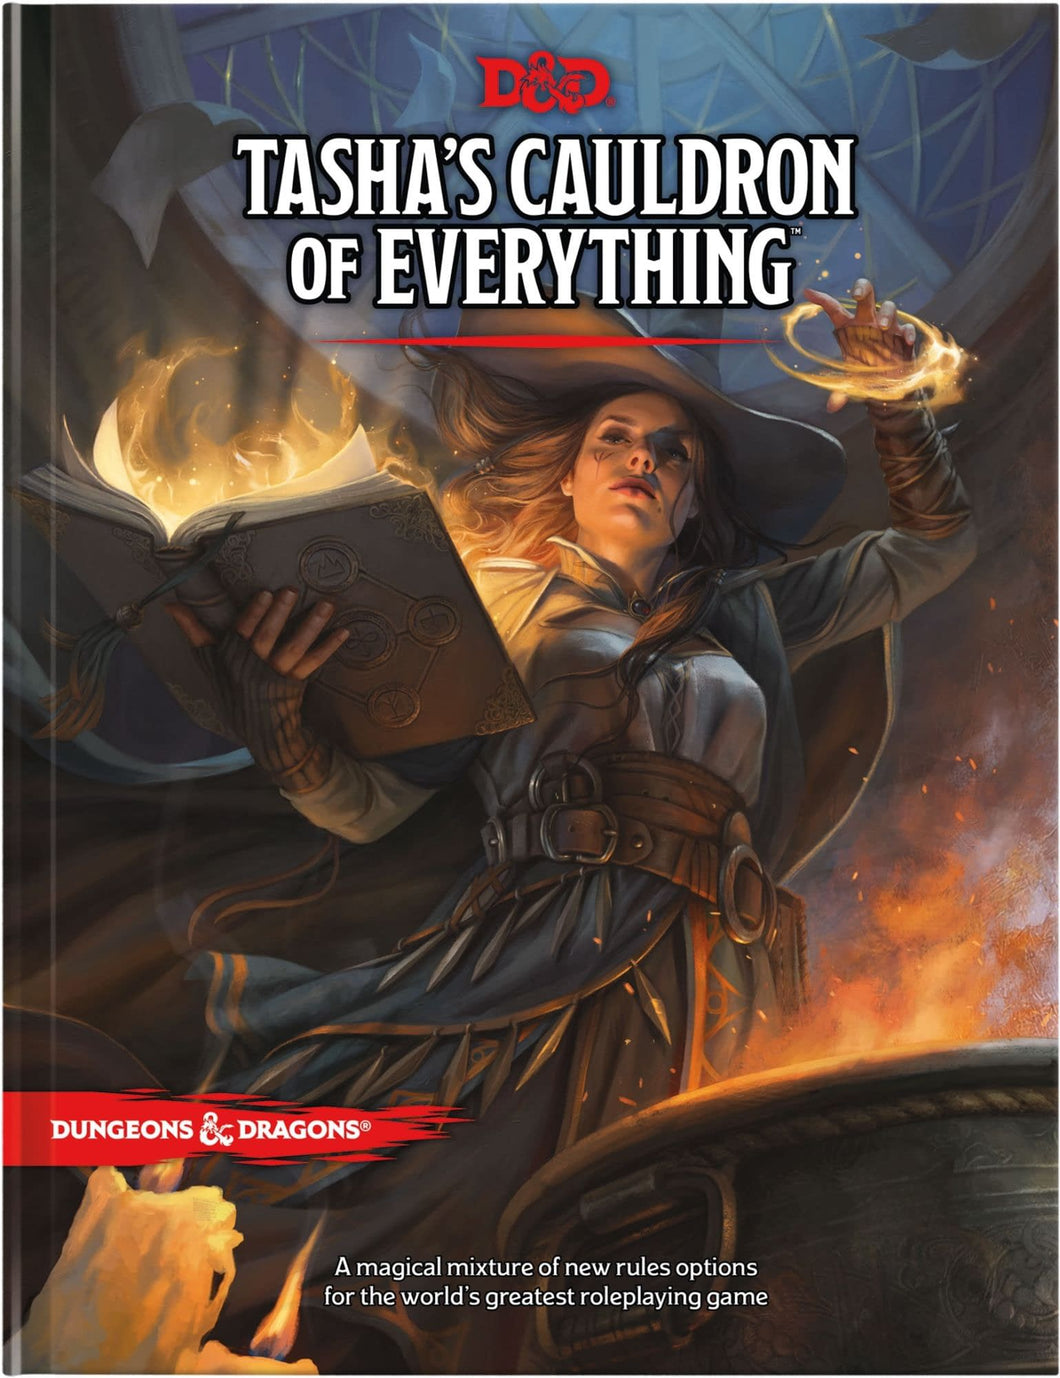 D&D 5e Tasha's Cauldron of Everything